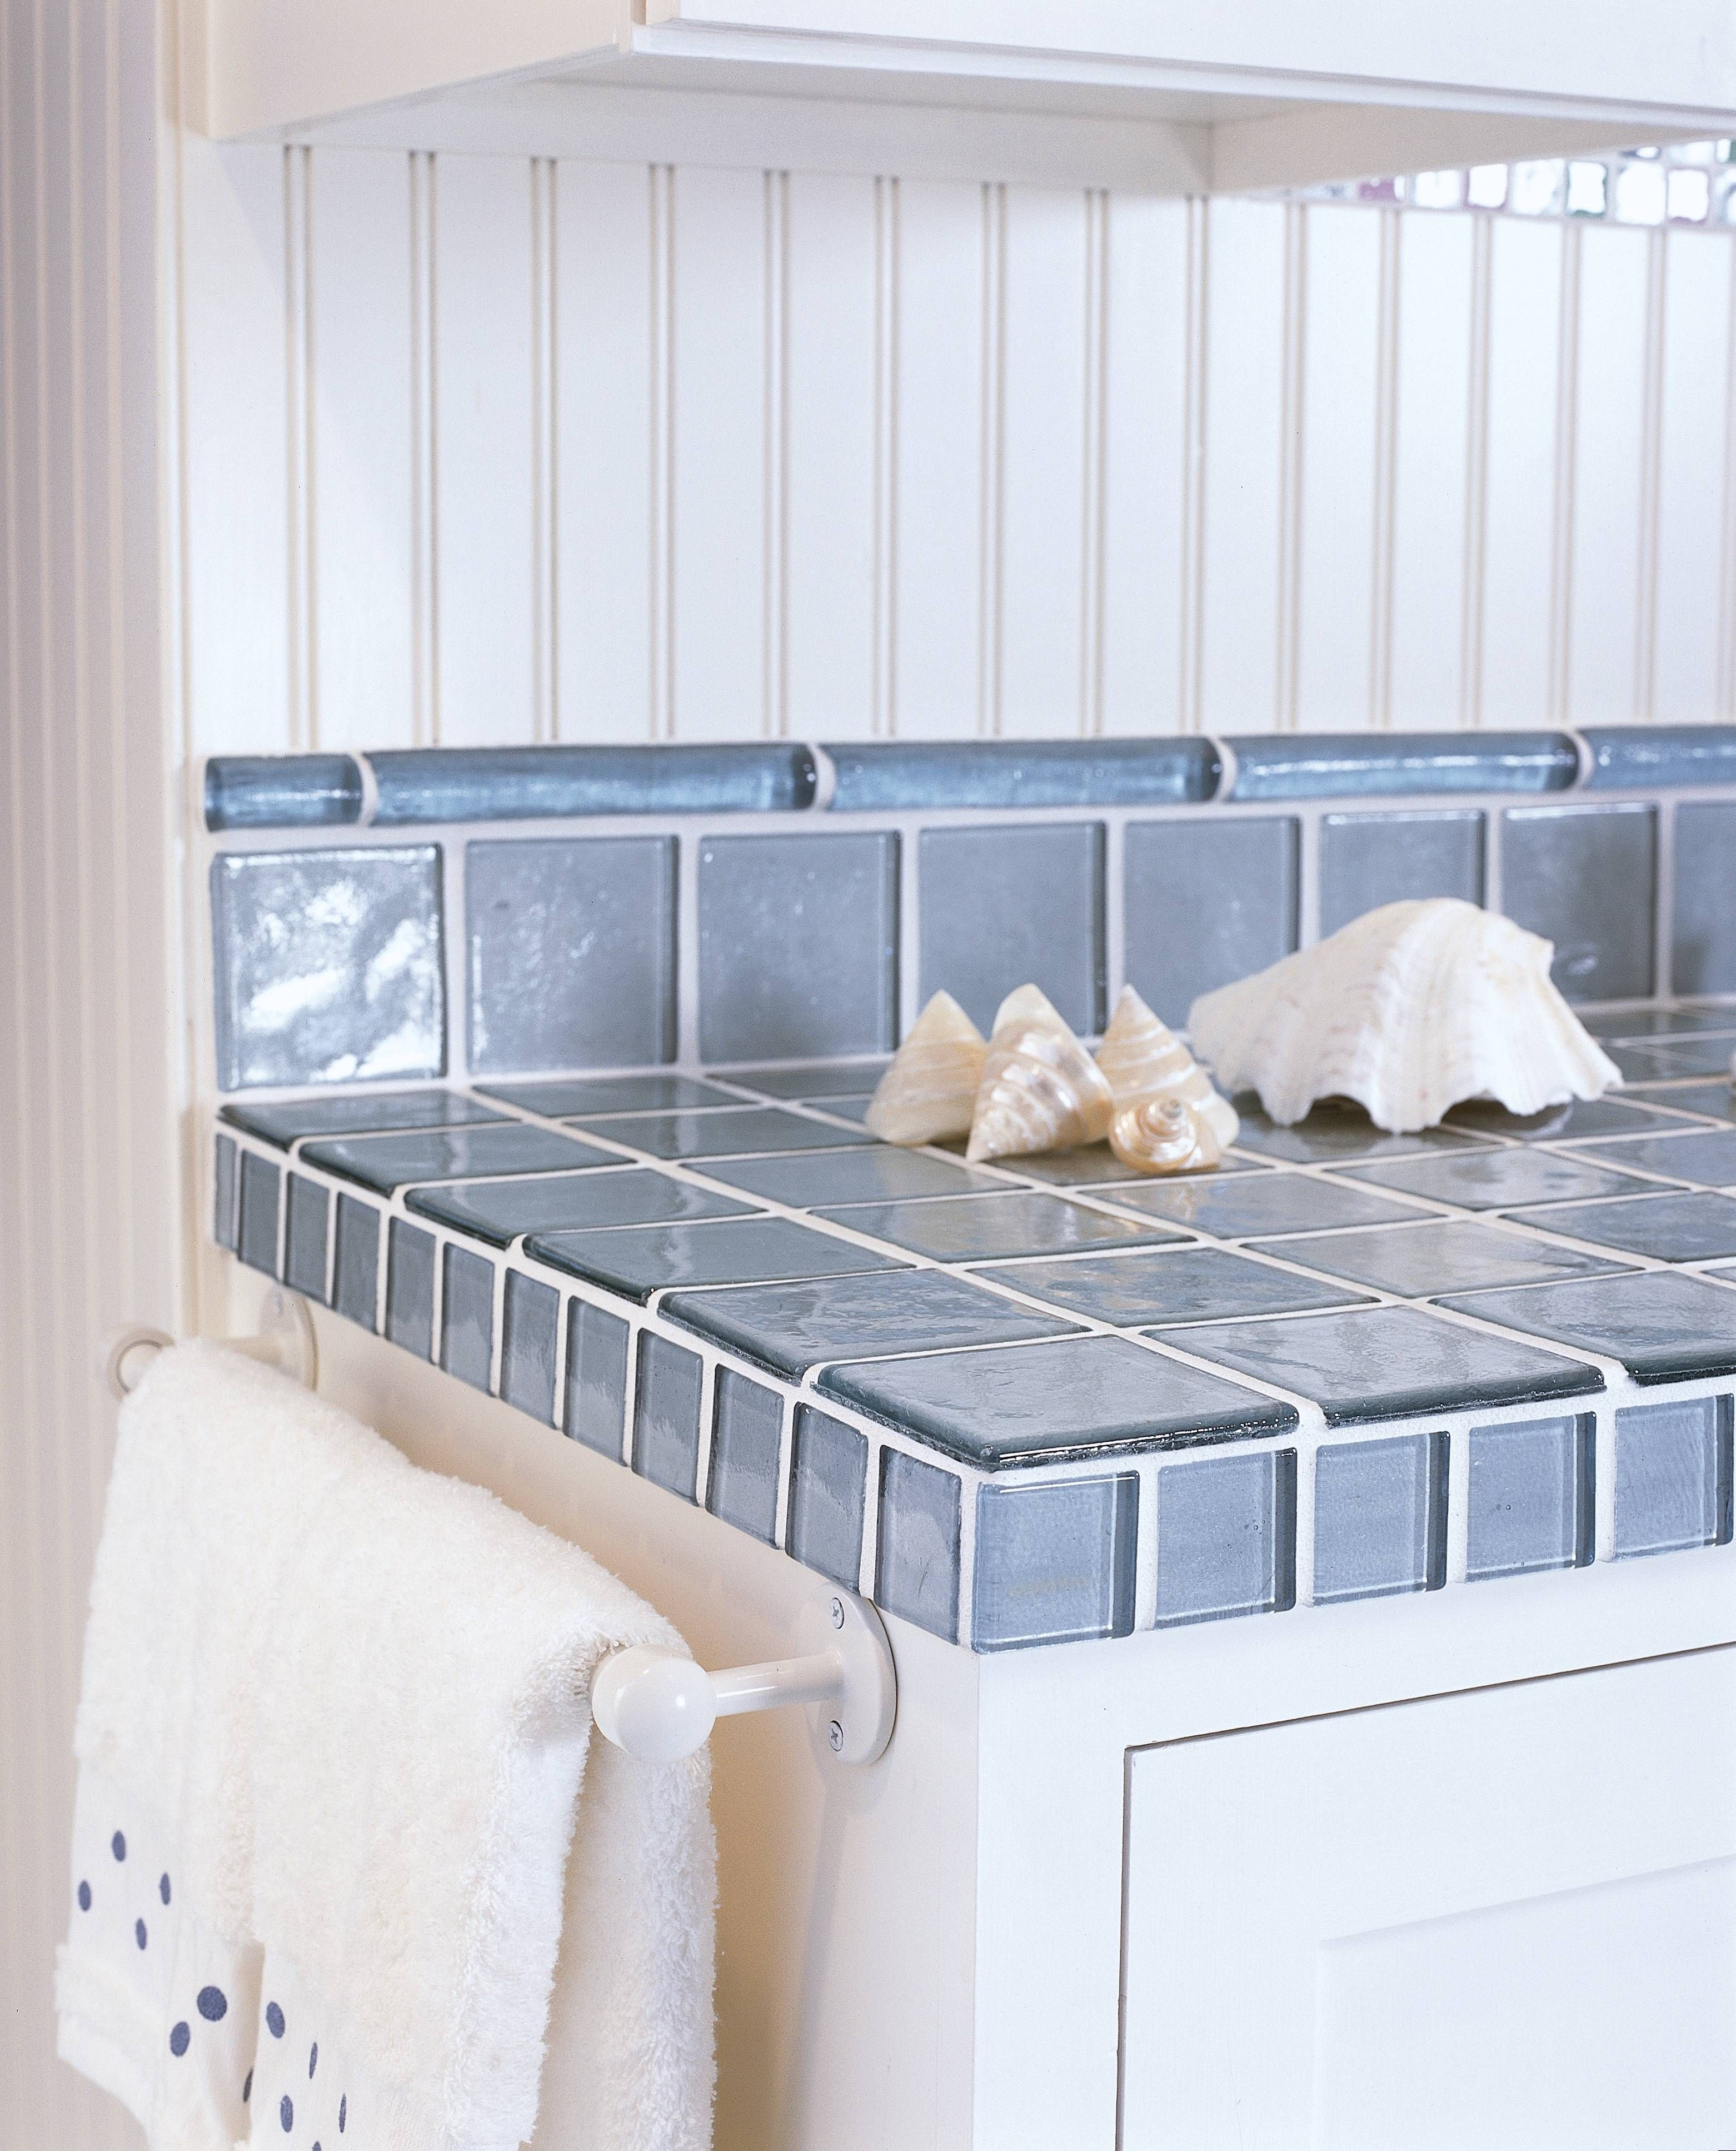 unique kitchen countertops Image Gallery of Recycled Glass Tile Counters